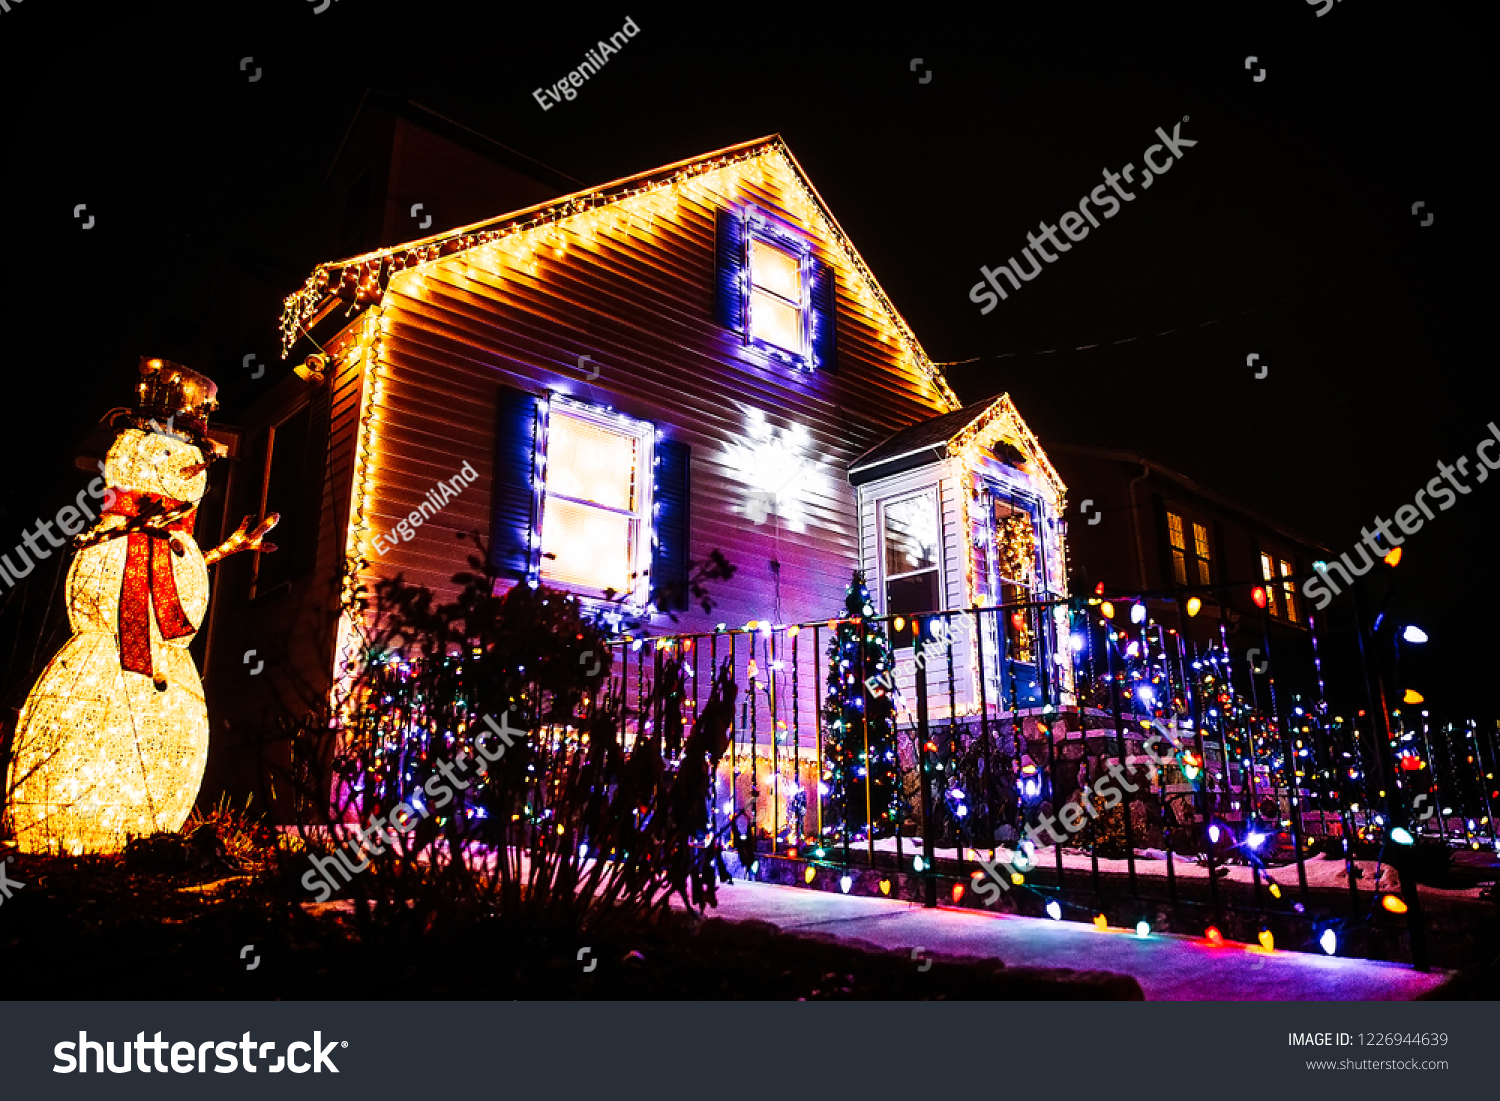 Christmas Lights On Front House Beautiful Stock Photo Edit Now 1226944639